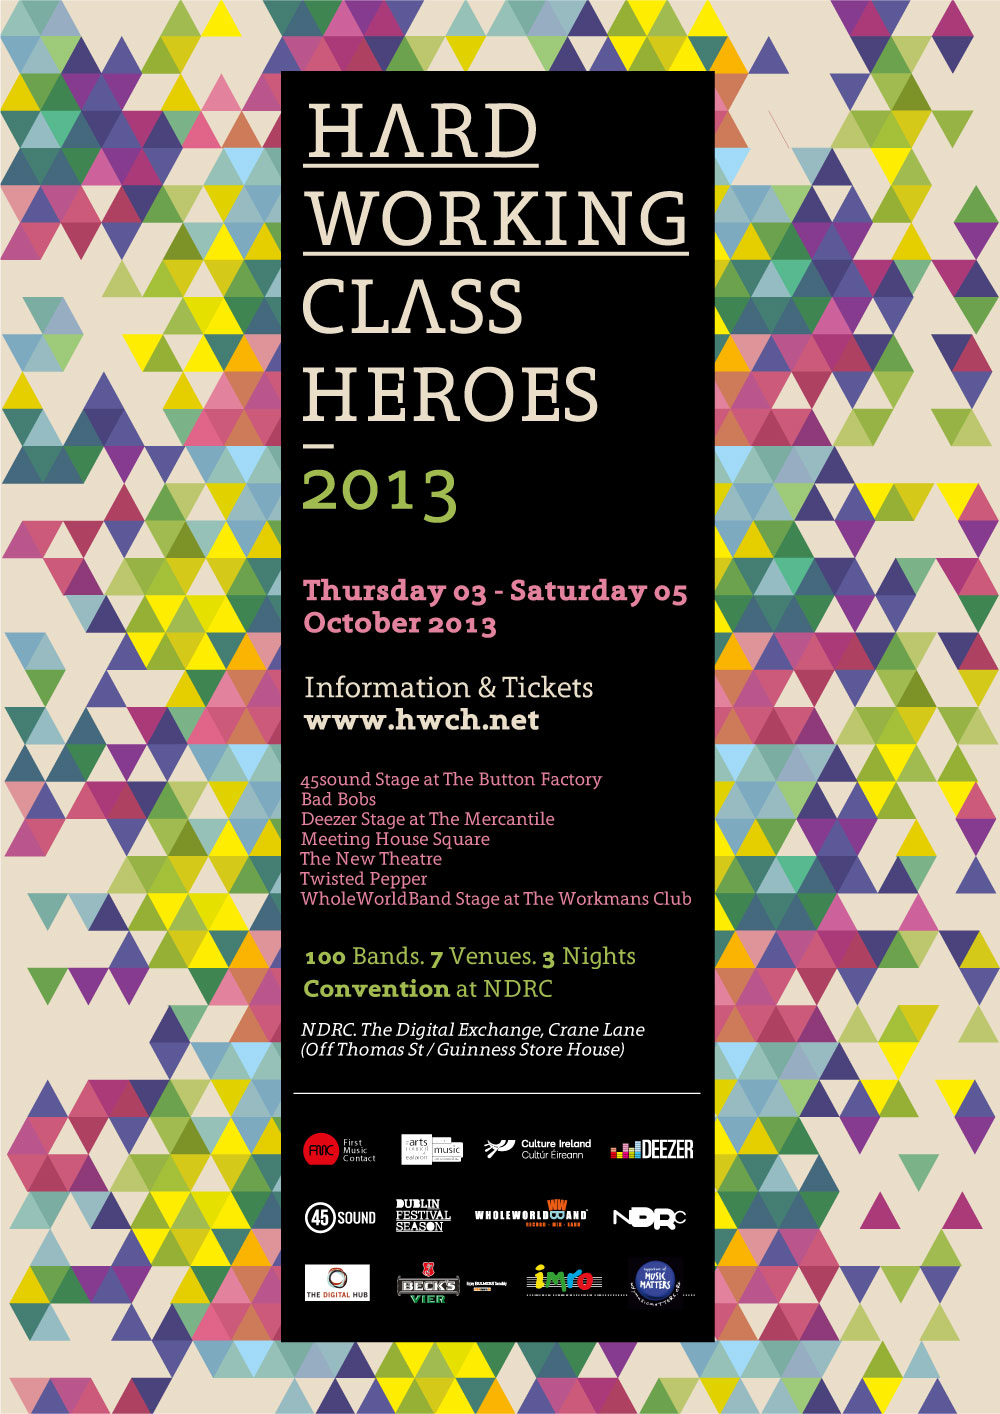 2013 Archive - Hard Working Class Heroes